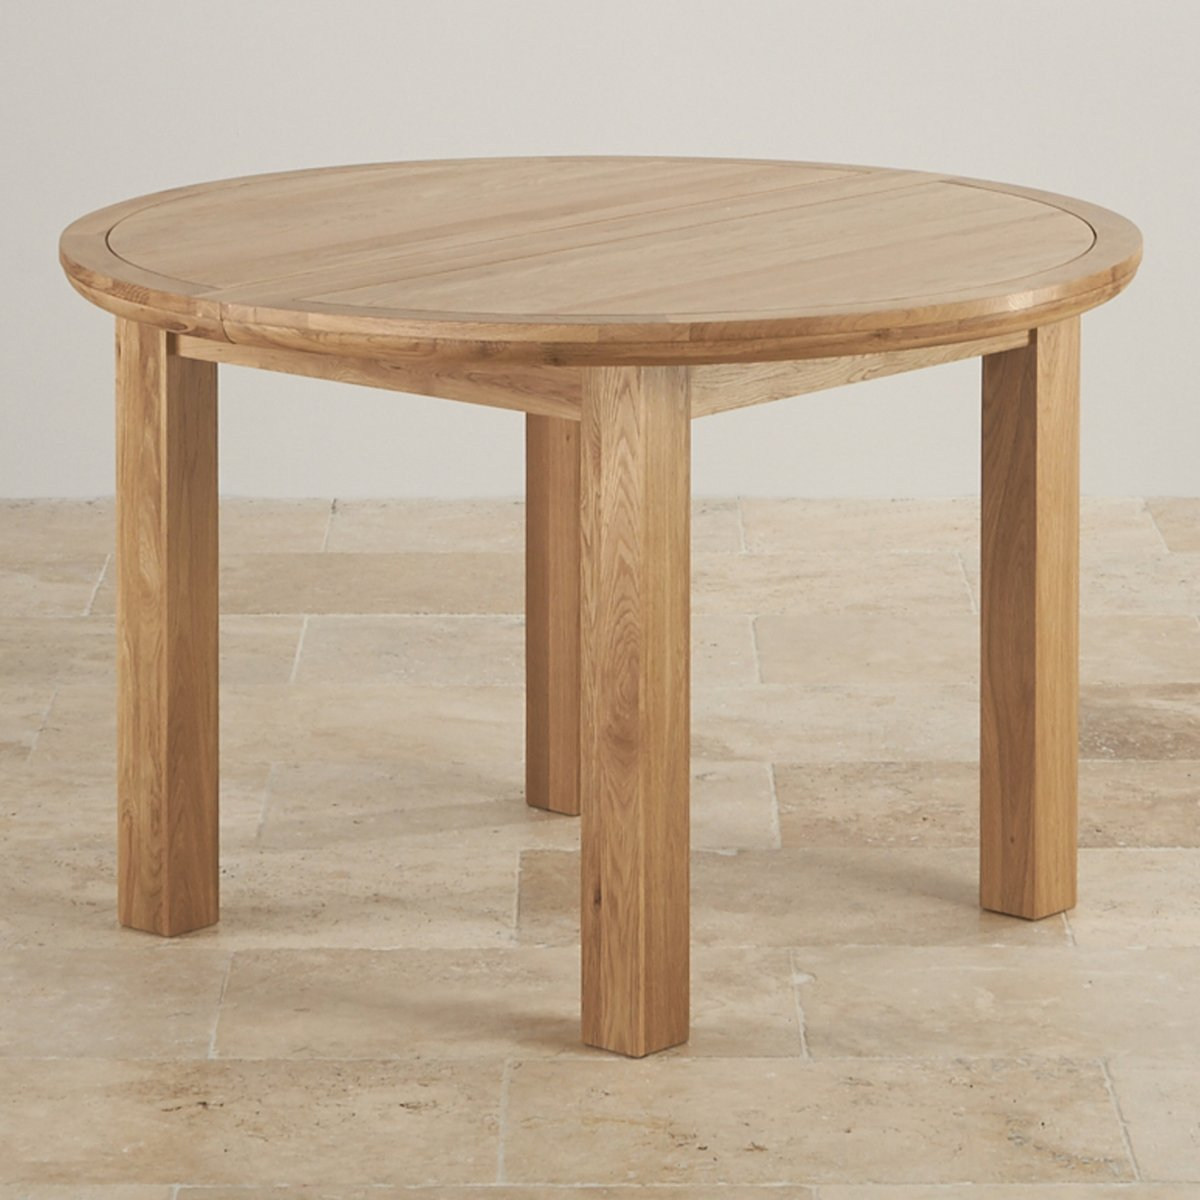 knightsbridge 4ft extending round dining table in natural oak. Black Bedroom Furniture Sets. Home Design Ideas